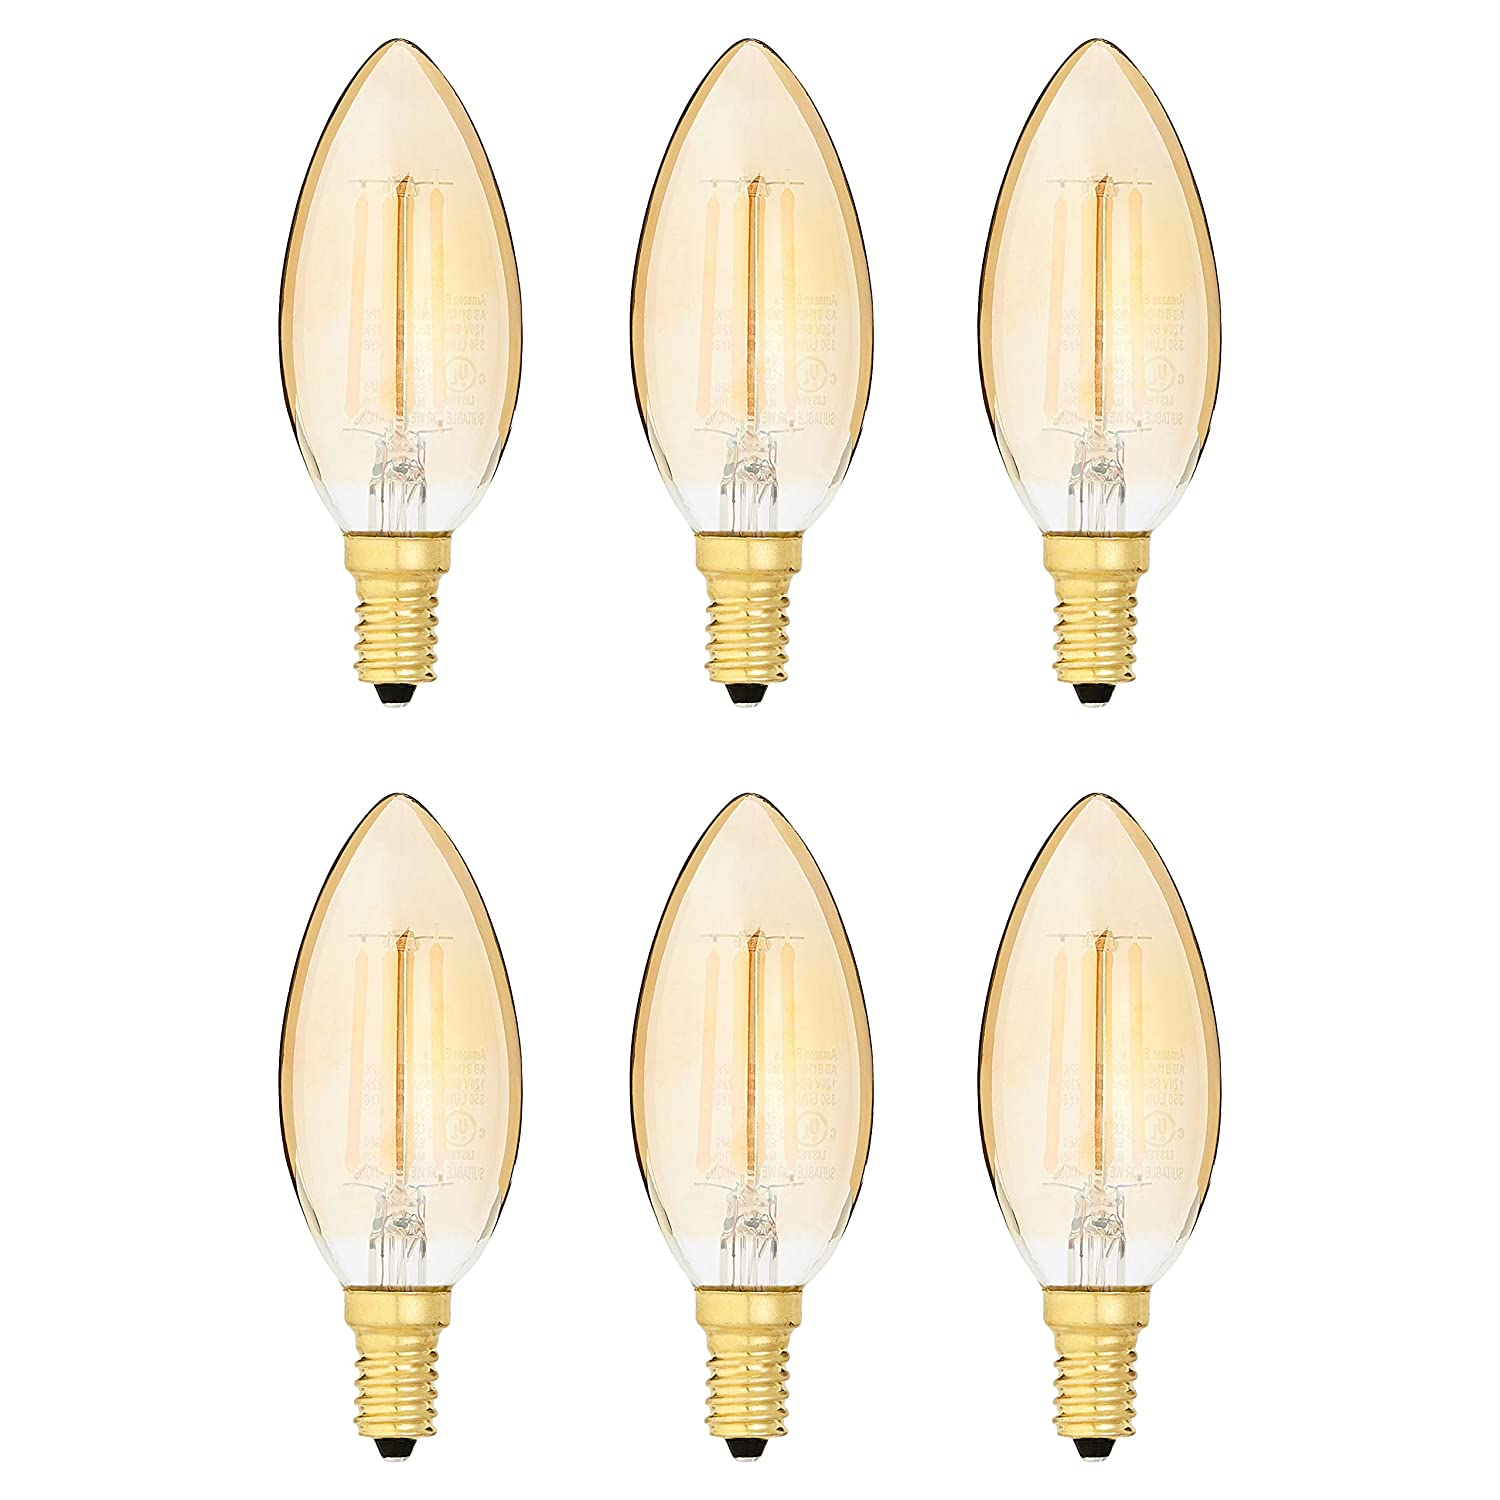 AmazonBasics 40 Watt Equivalent, Clear, Amber, Dimmable, B11 (E12 Candelabra Base) LED Light Bulb | 6-Pack